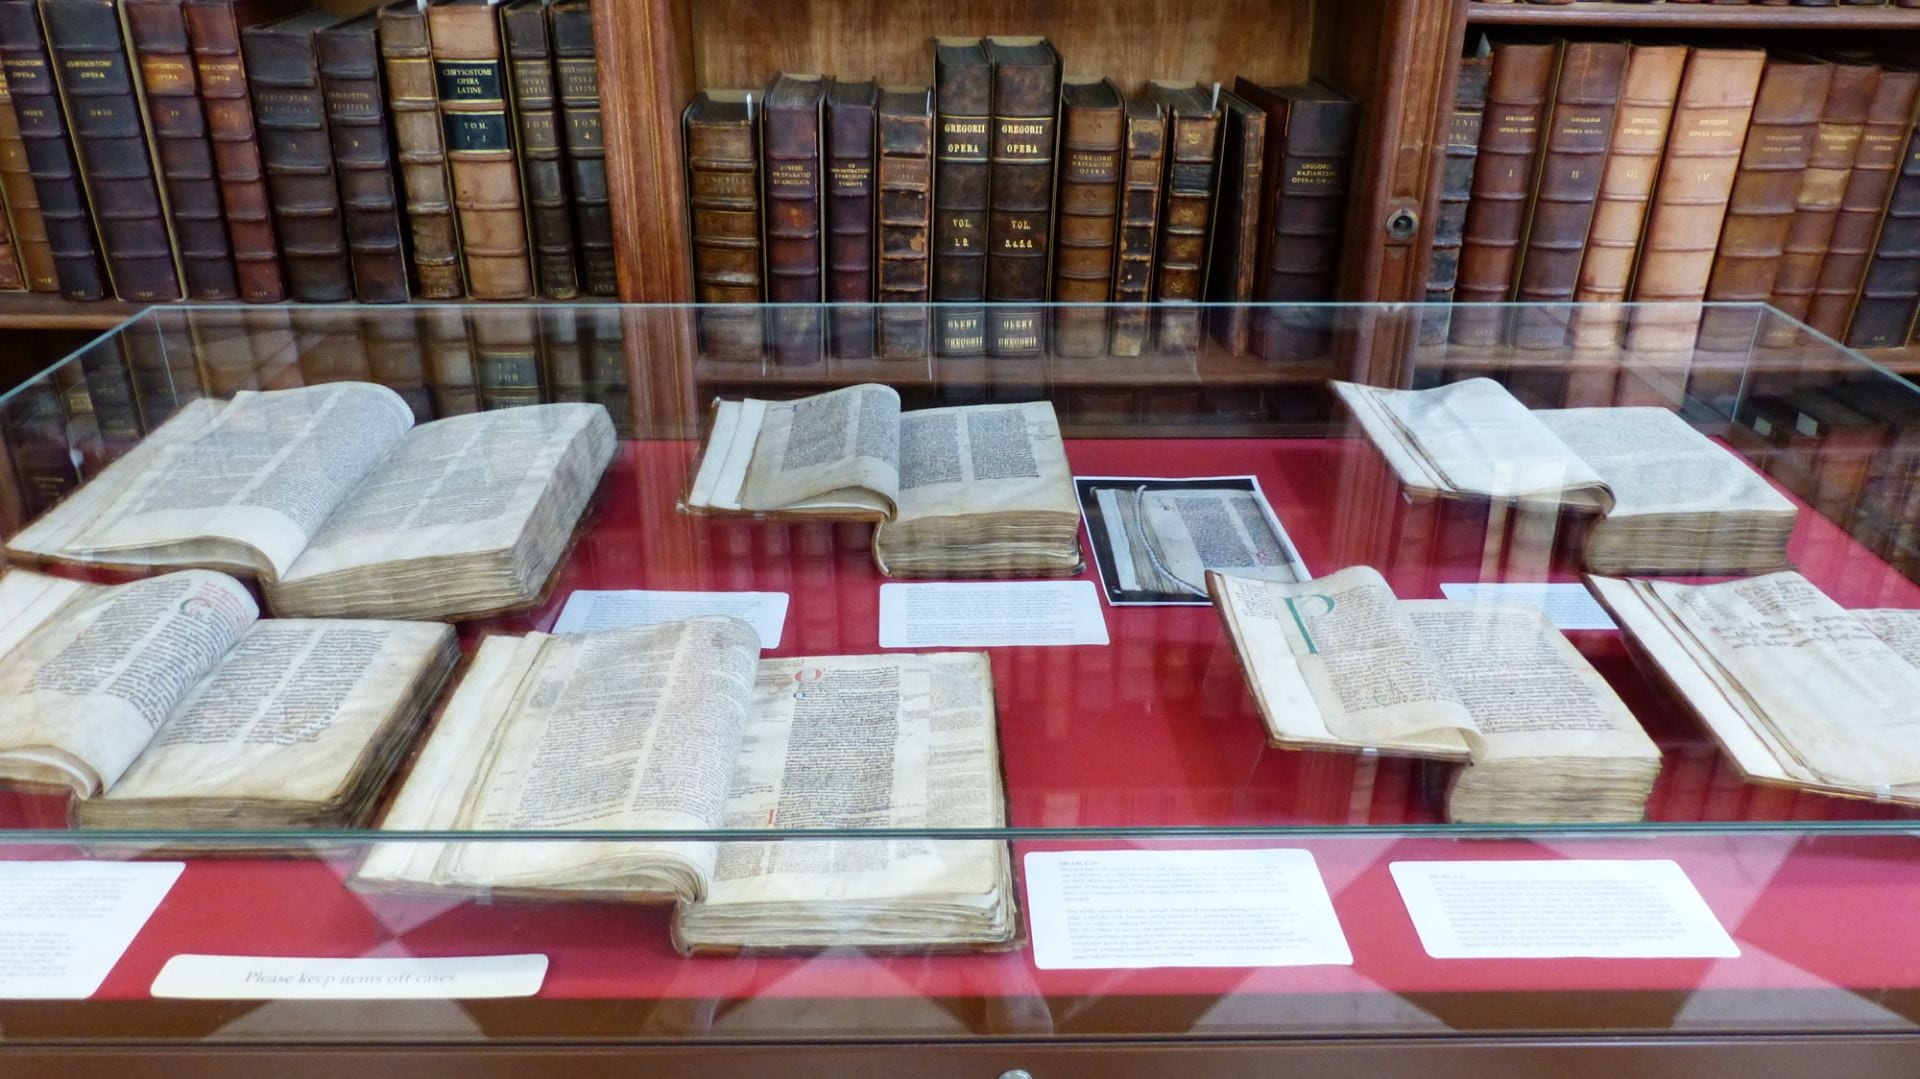 books on display inside Lambeth Palace Library